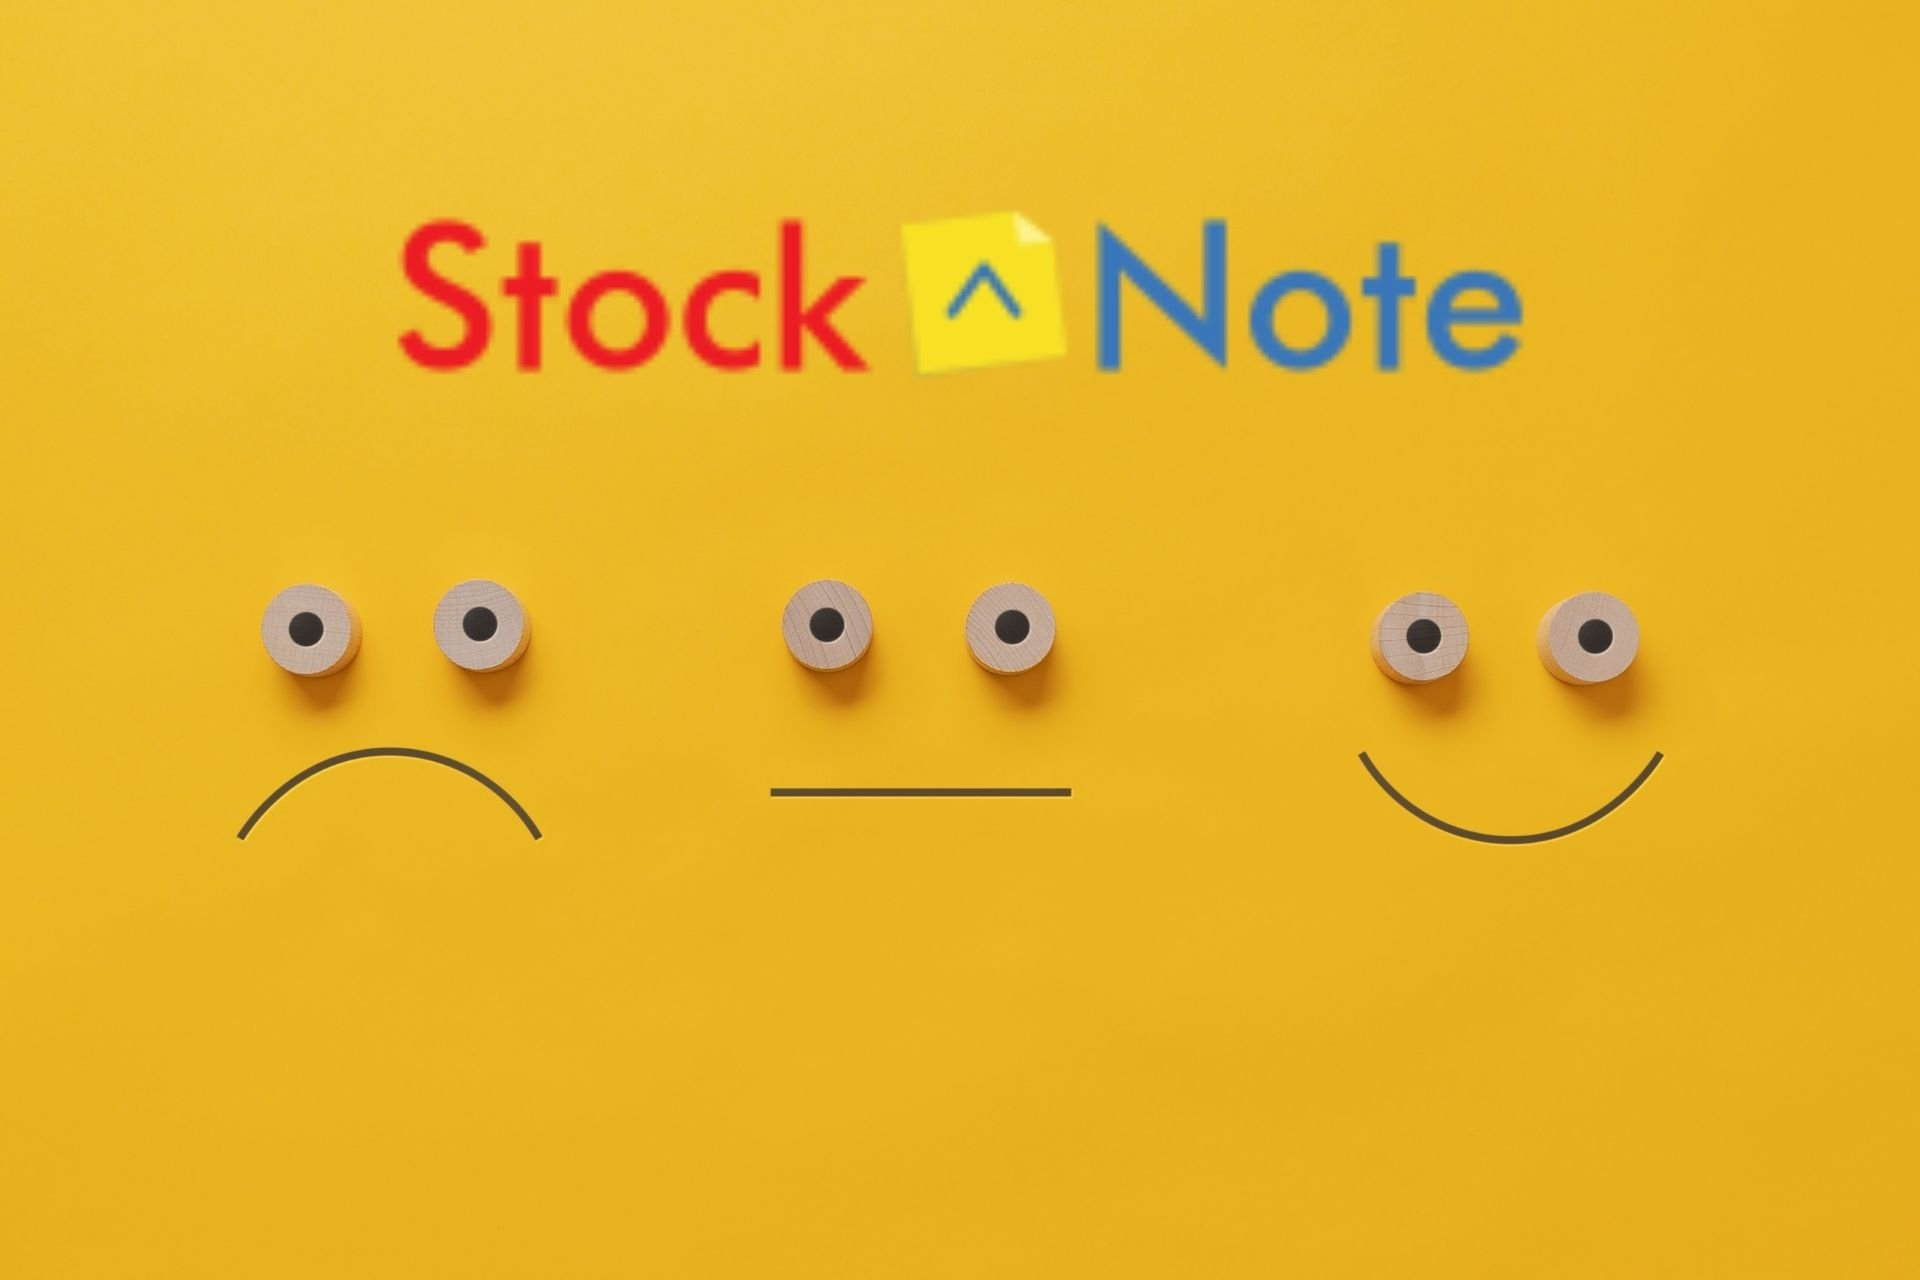 Samco Stock Note App Review 2021 – Features, Setup Process & Benefits